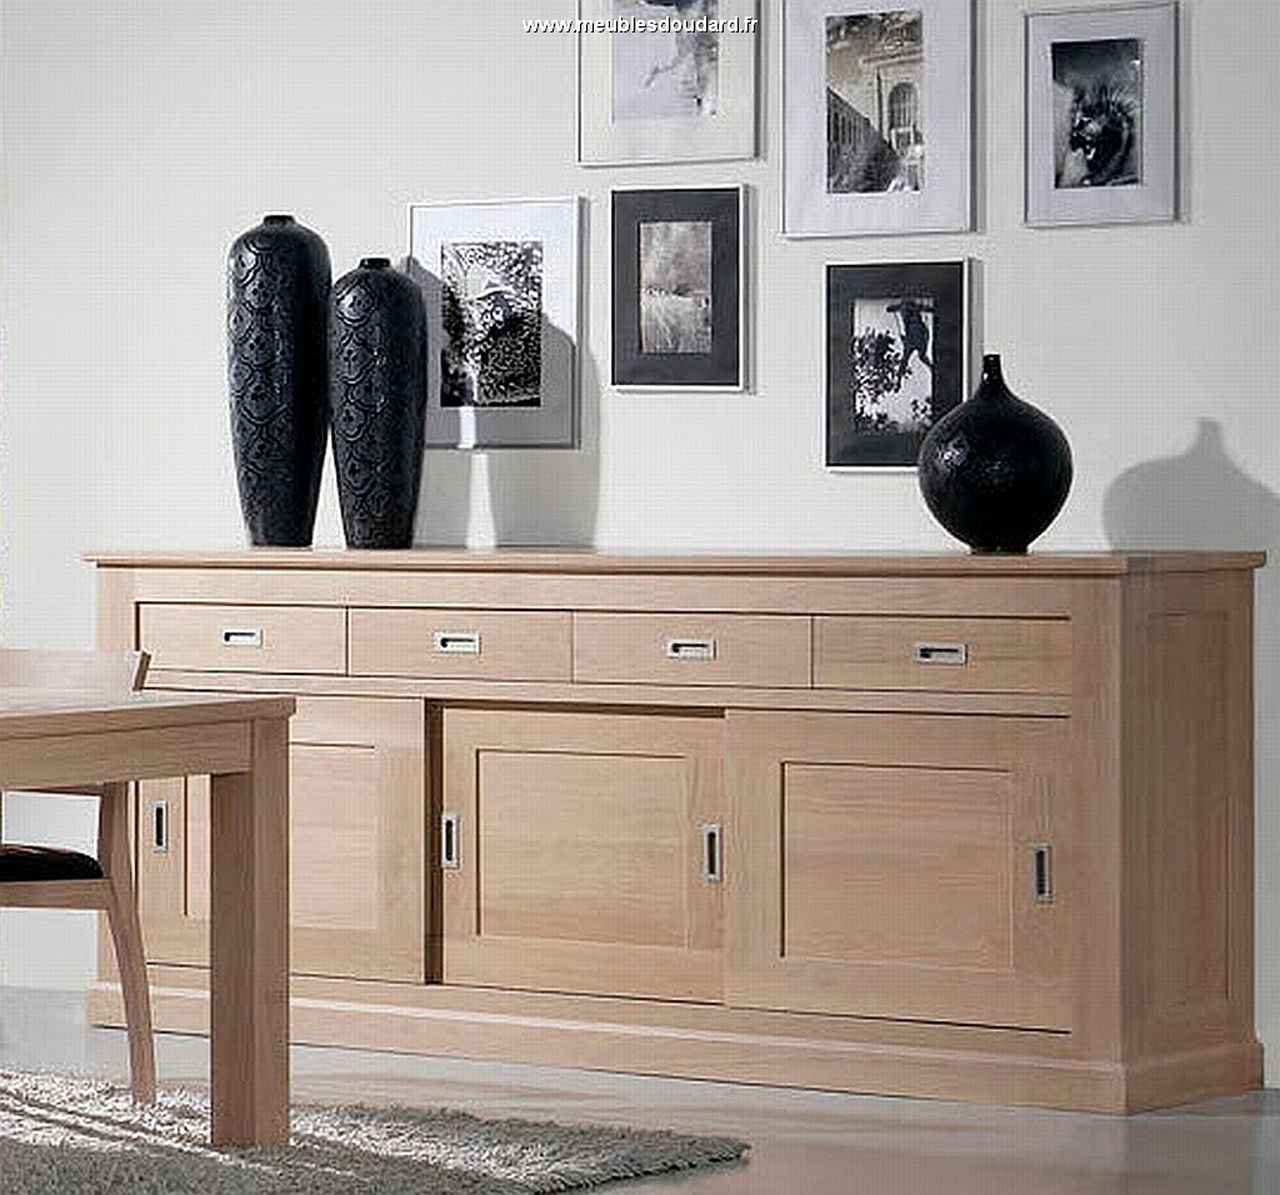 meubles contemporains en bois massif. Black Bedroom Furniture Sets. Home Design Ideas